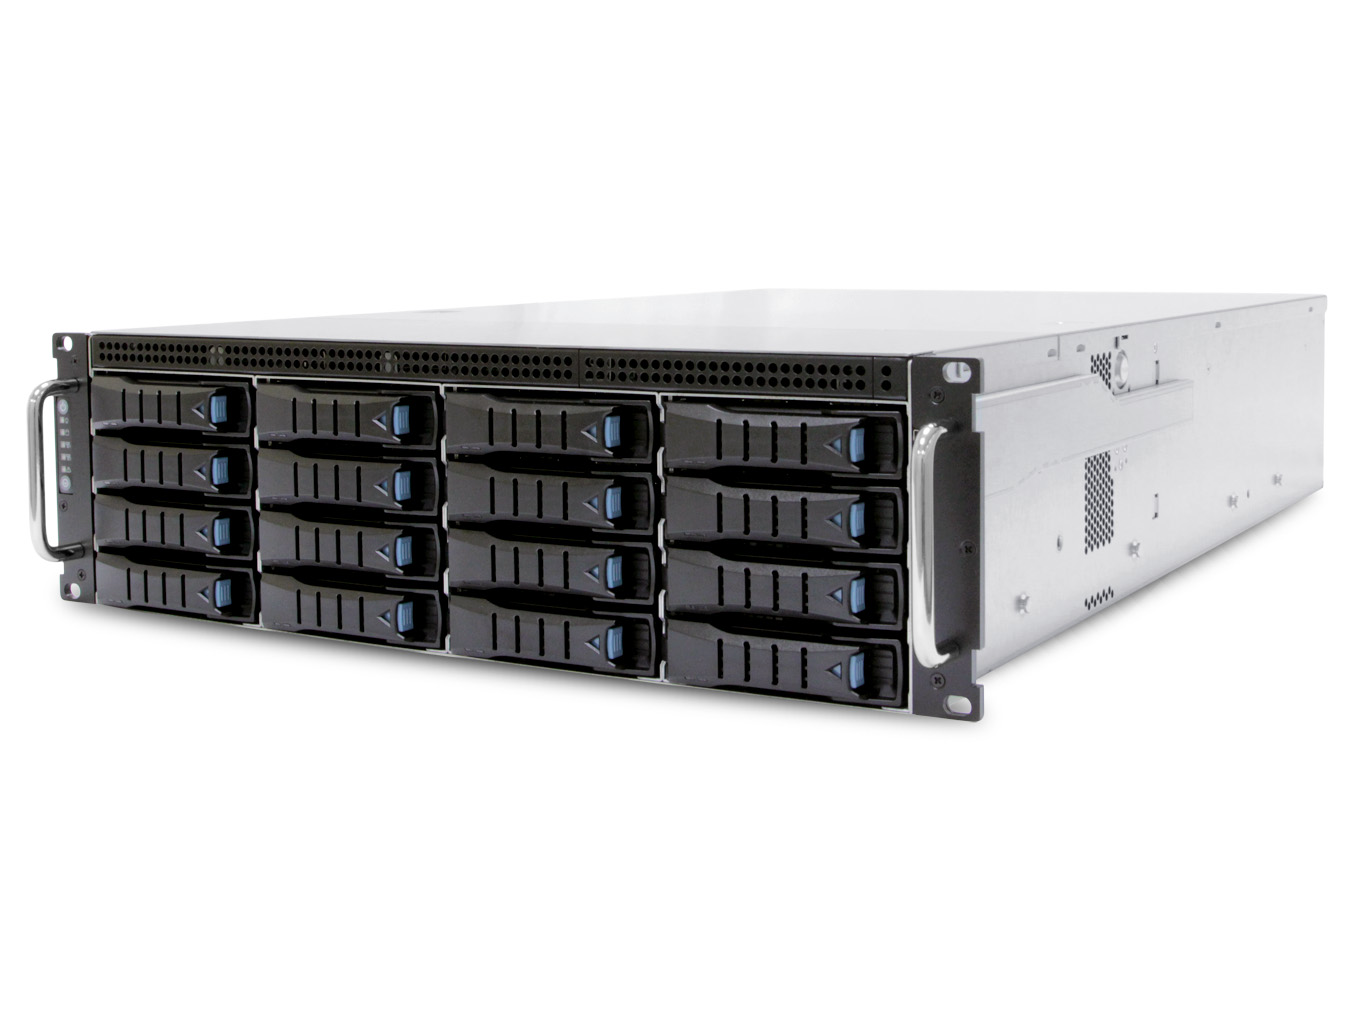 AIC SB302-VG XP1-S302VG01 3U 16-Bay Storage Server